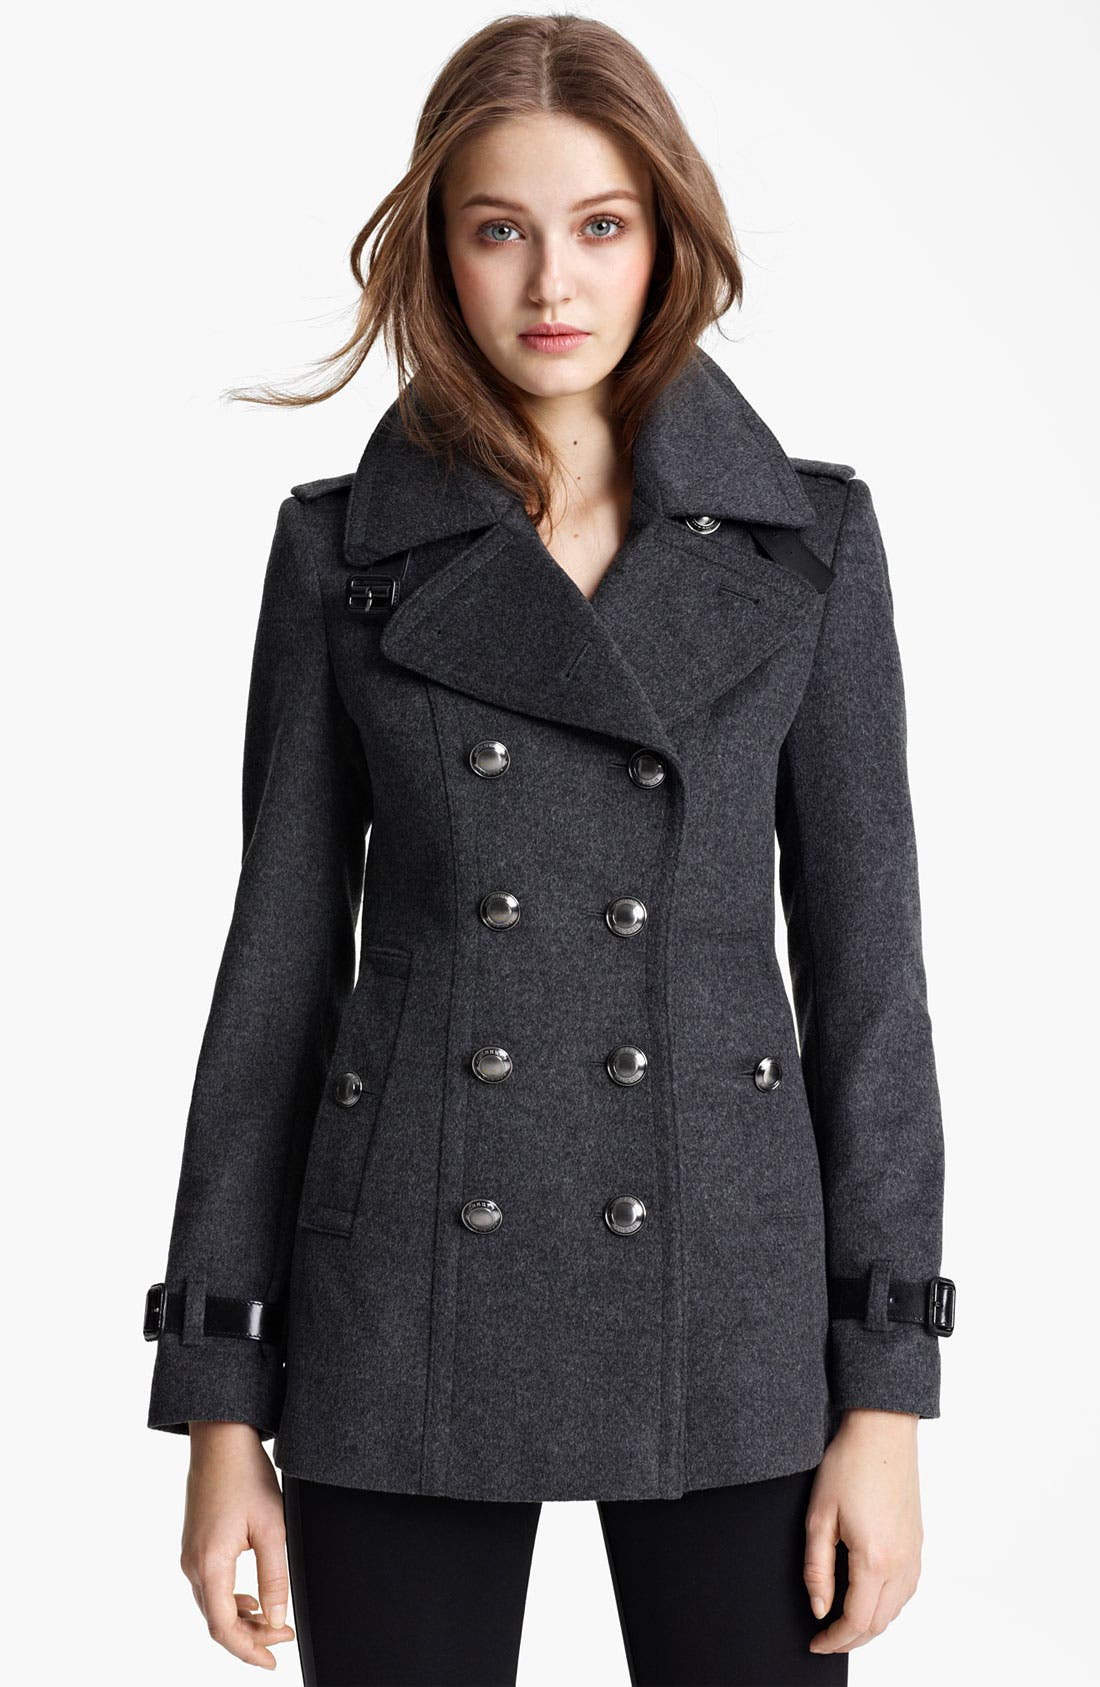 Alternate Image 1 Selected - Burberry London Wool & Cashmere Jacket